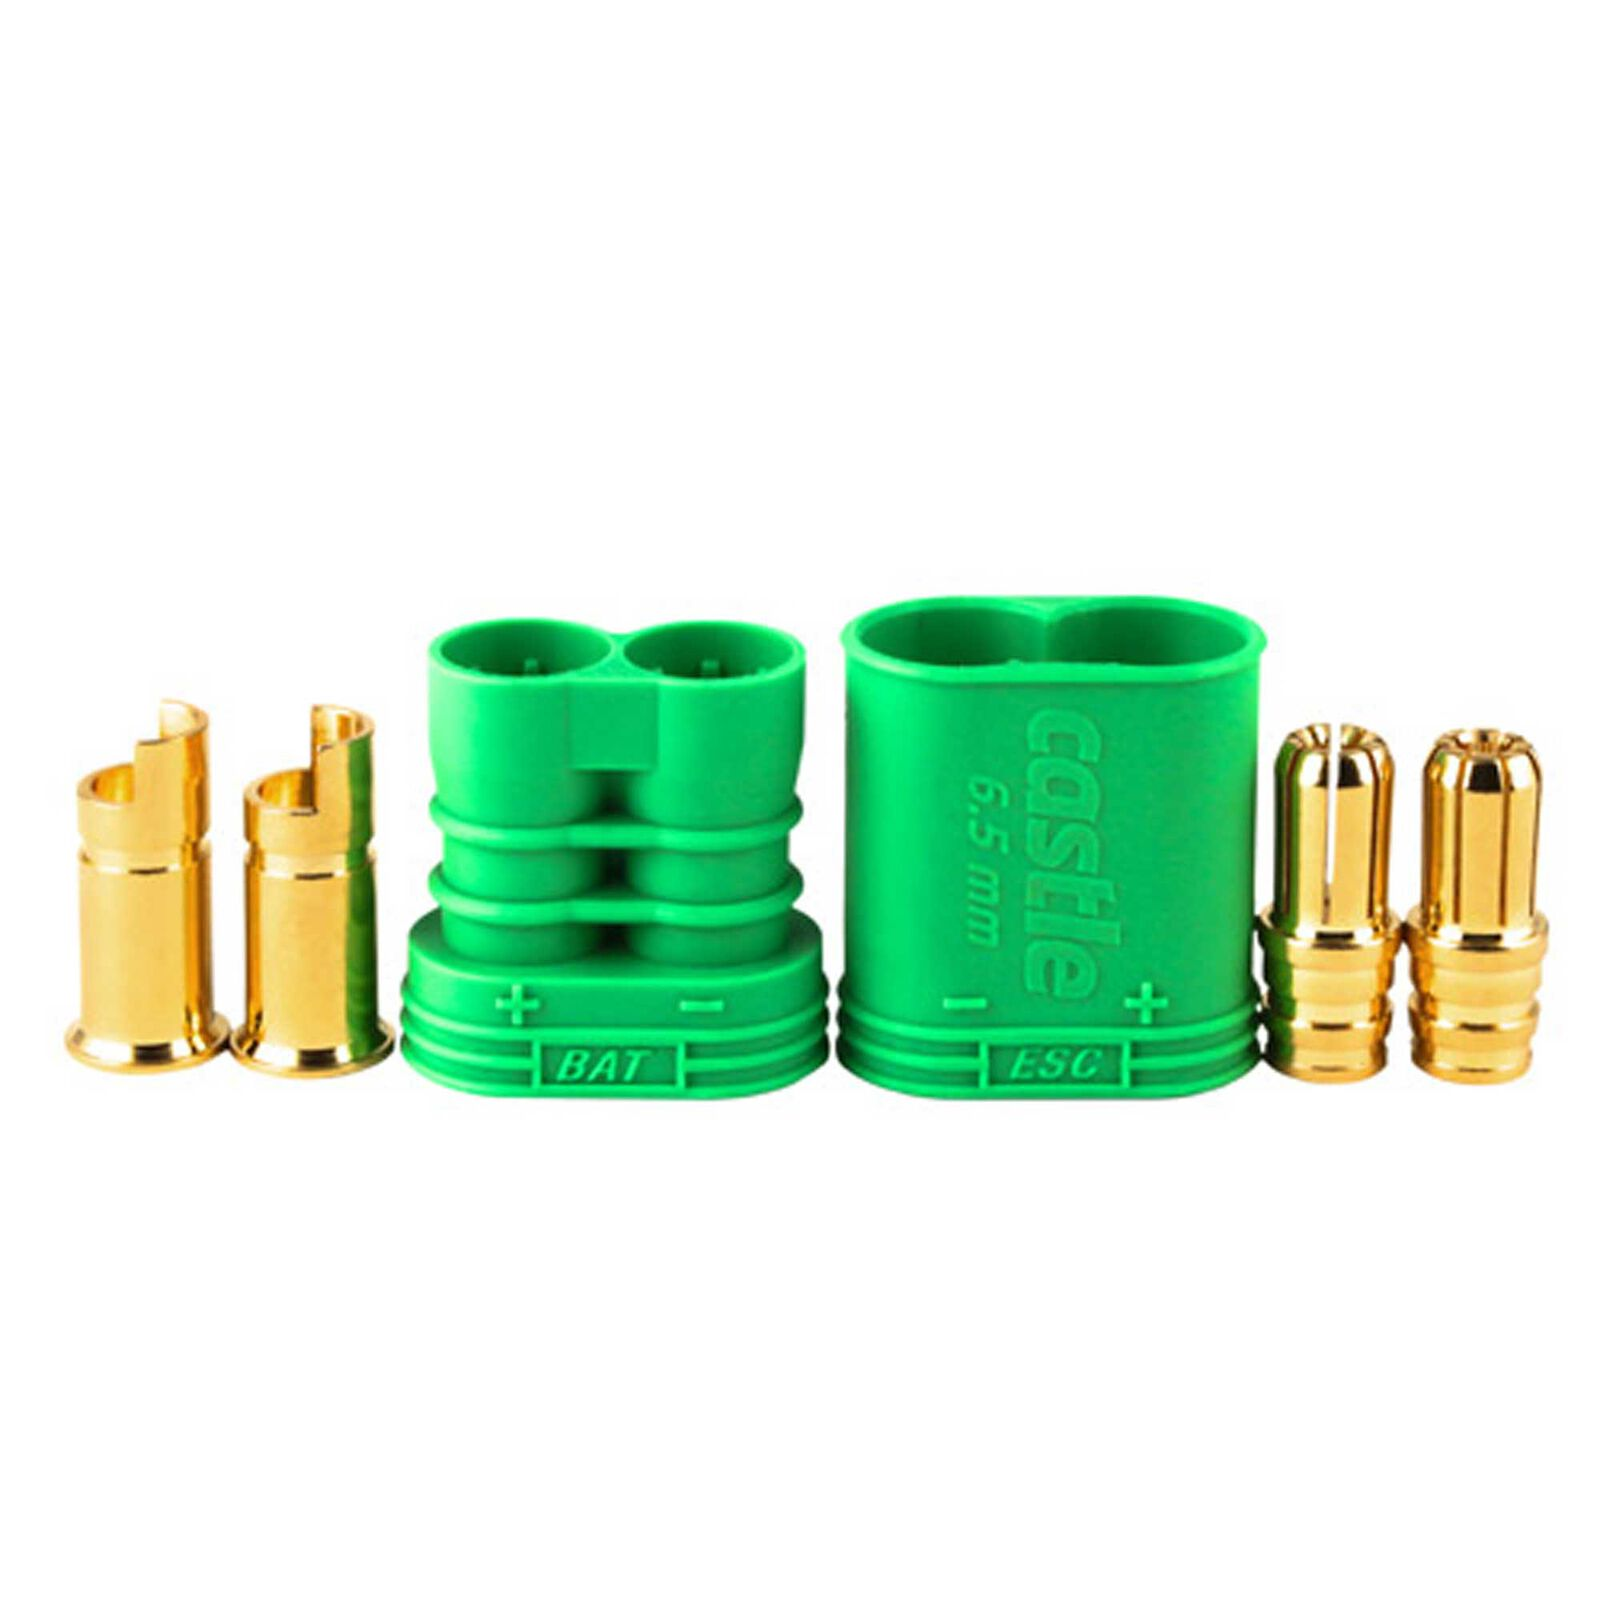 Connector: 6.5mm Polarized Bullet Device and Battery Set